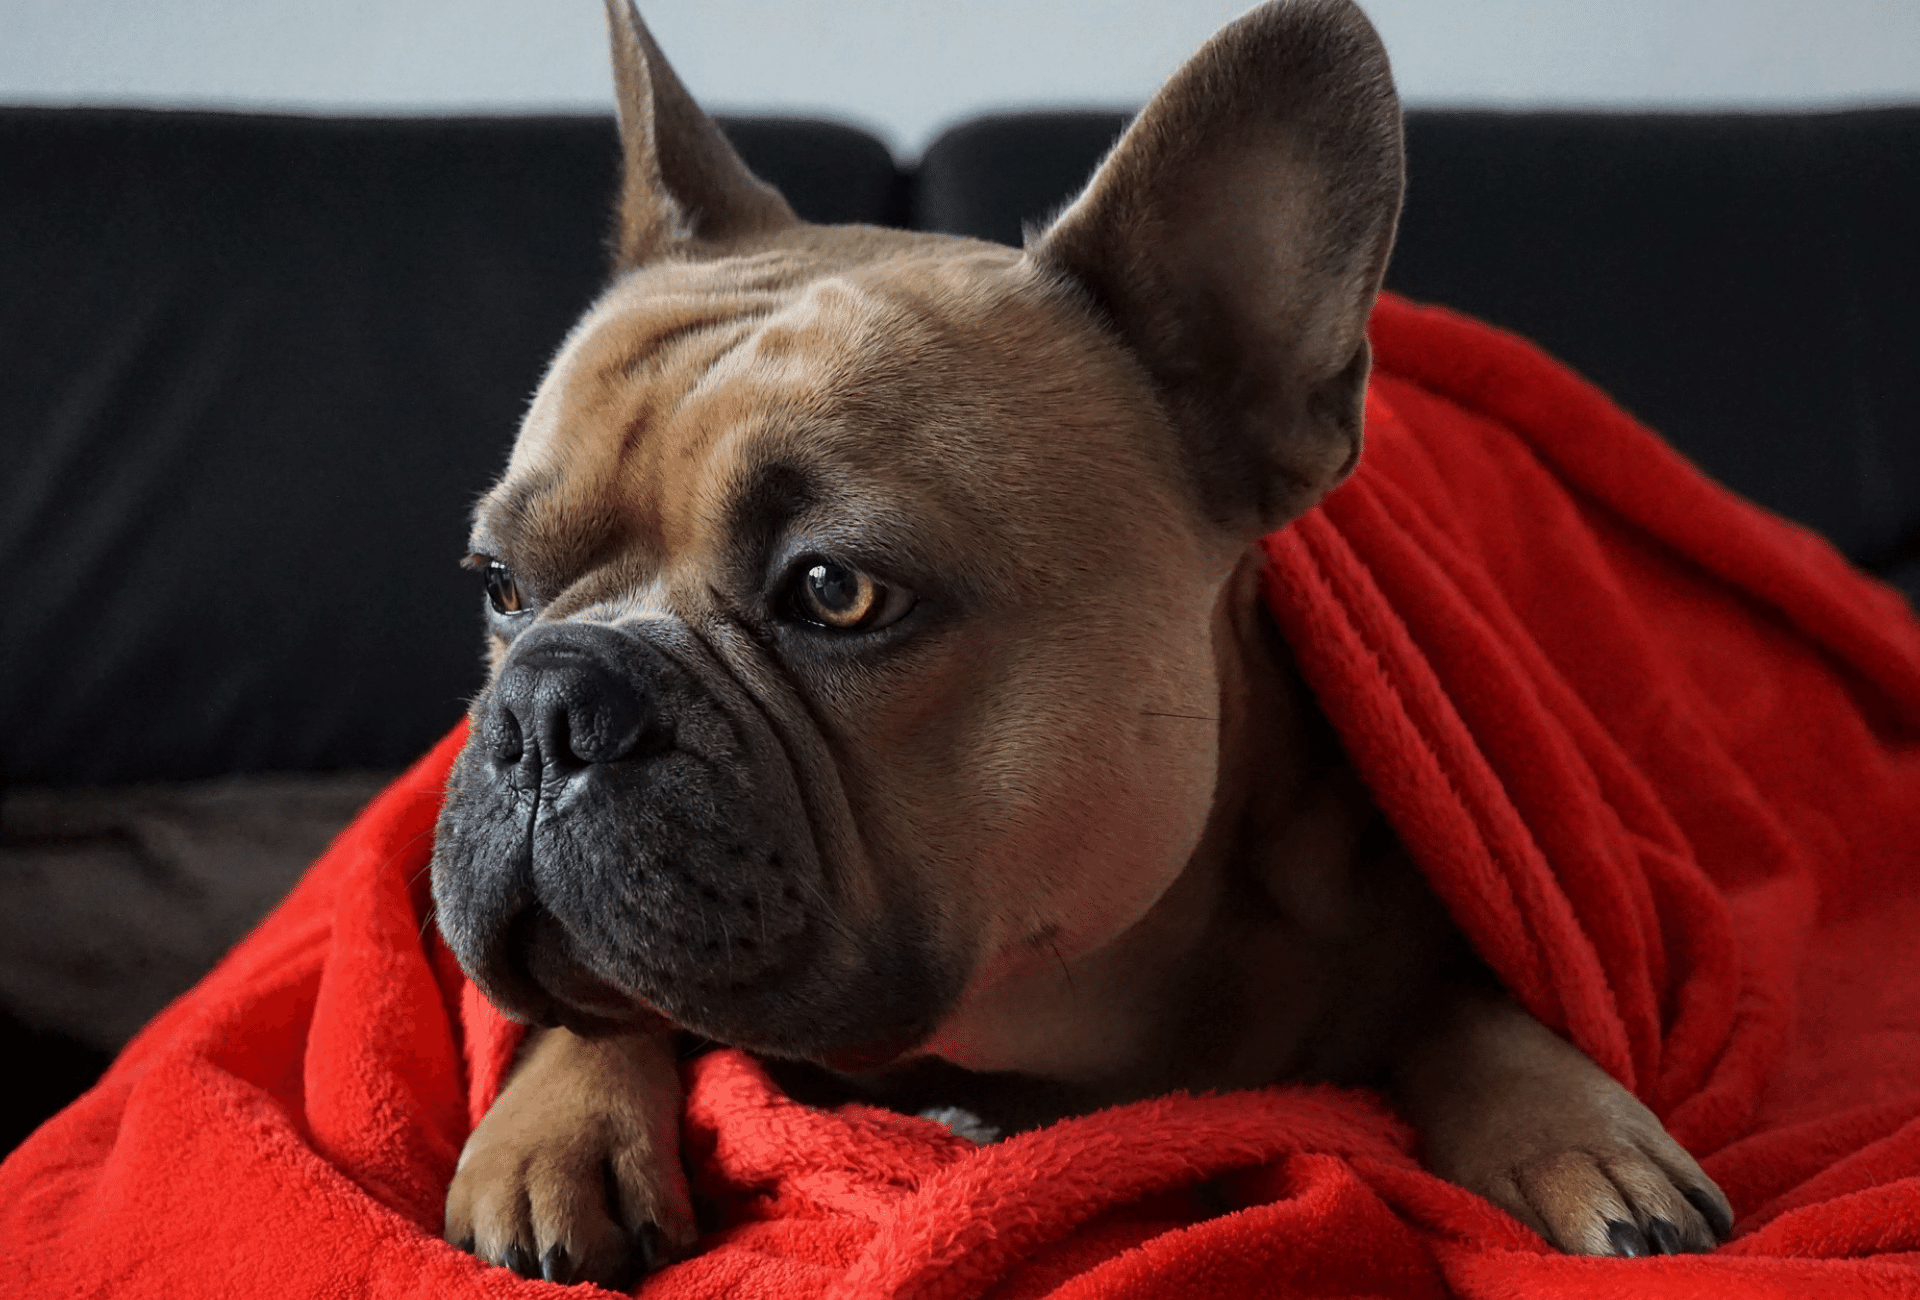 Sable French Bulldog with deep red coat and black-tipped hairs under blanket.